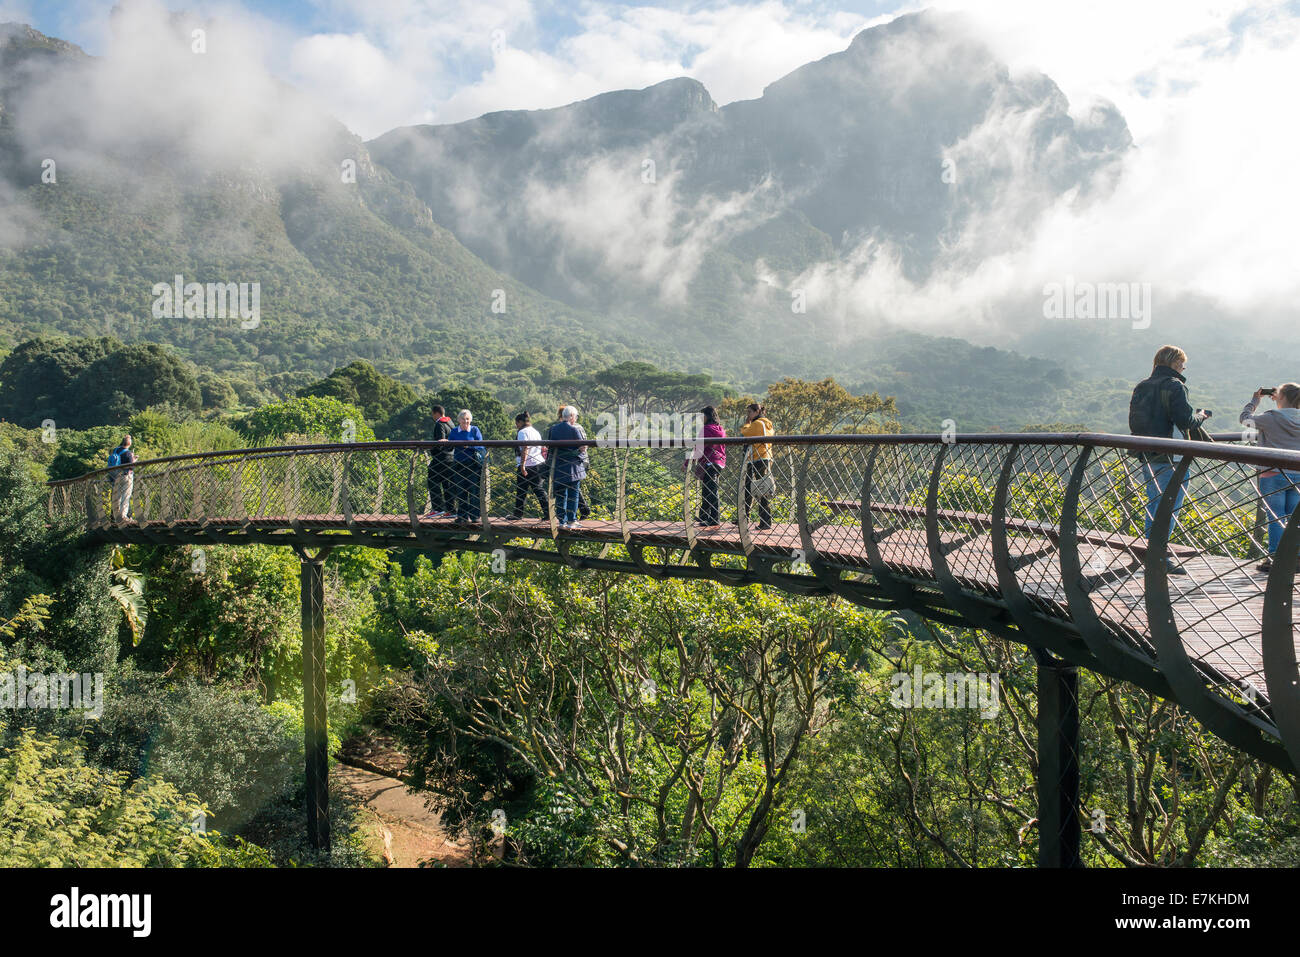 Cape Town Kirstenbosch Gardens Centenary Tree Canopy Walkway opened in May 2014 to celebrate 100 years & Kirstenbosch Stock Photos u0026 Kirstenbosch Stock Images - Alamy